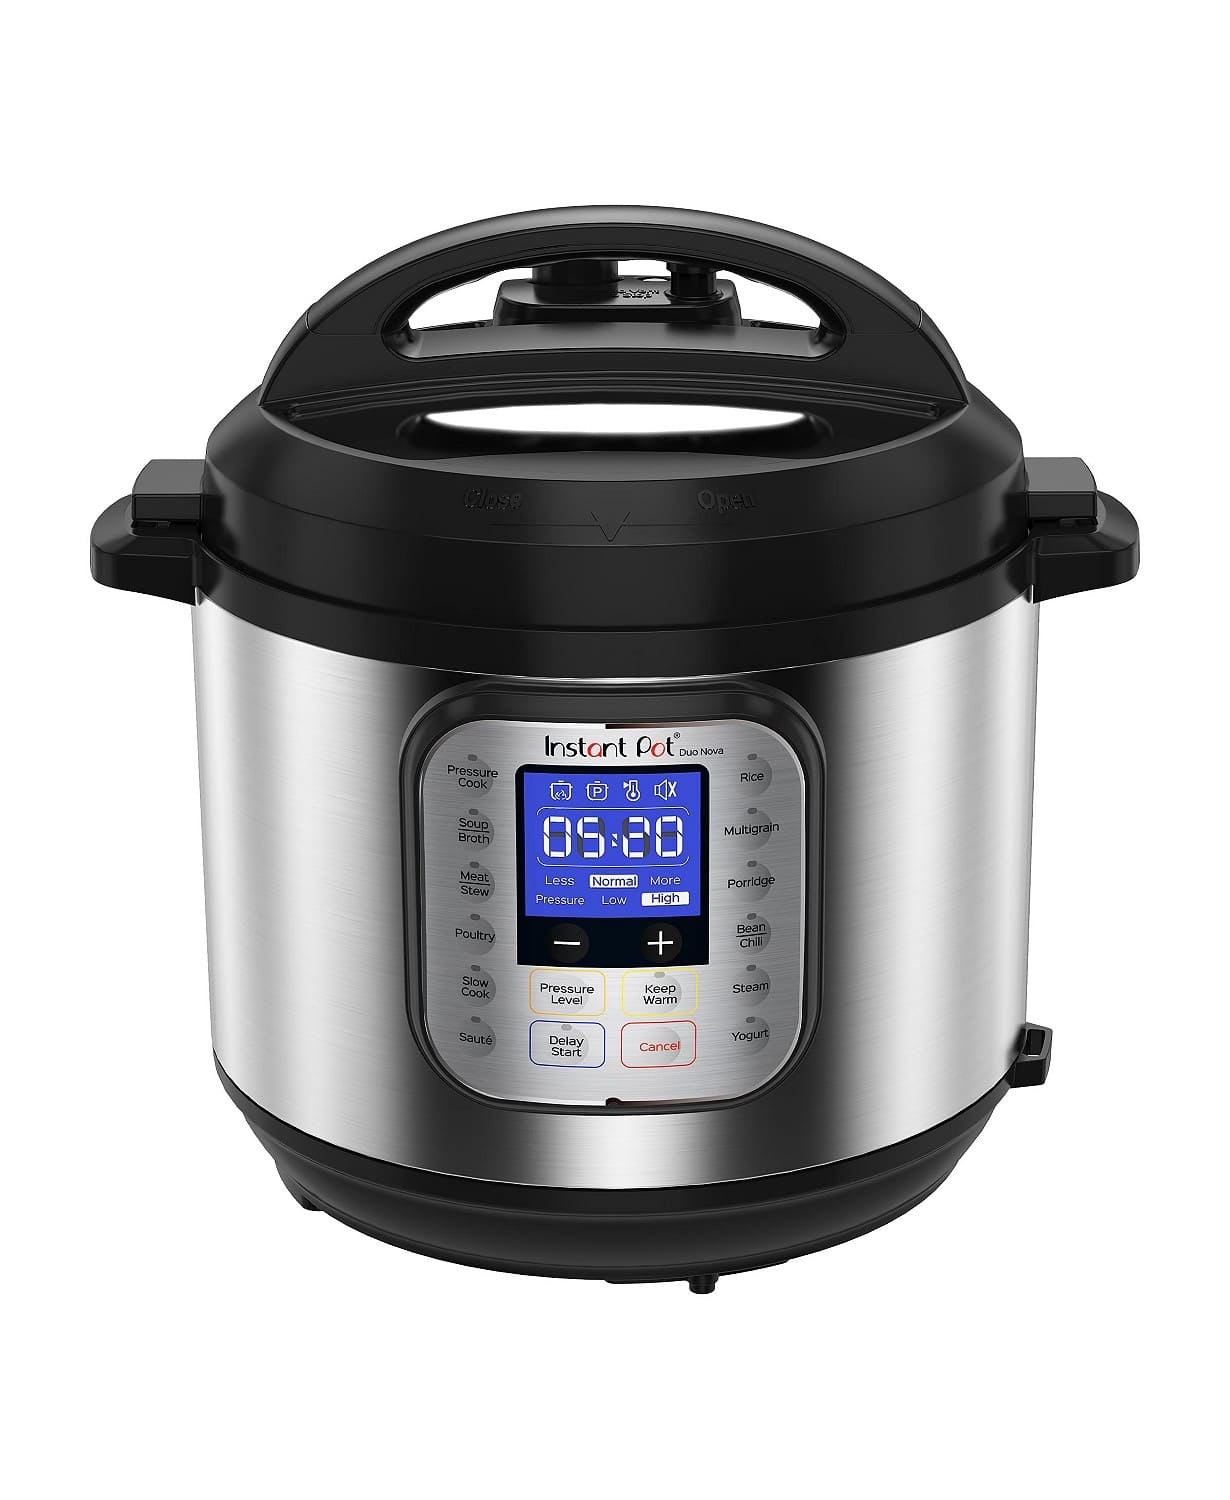 6-Qt. Instant Pot Duo Nova 7-in-1 Pressure Cooker